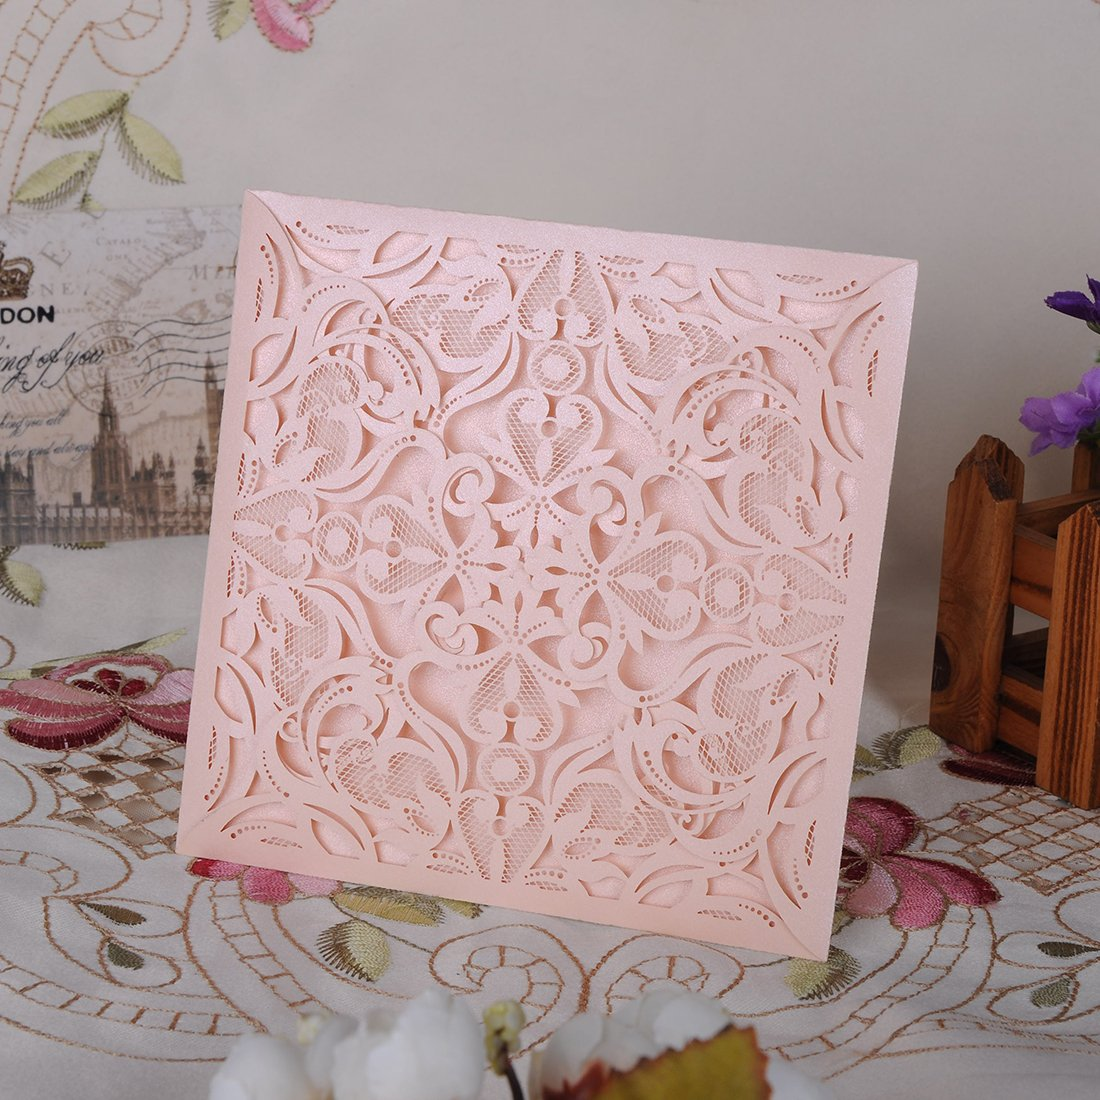 YUFENG 60pcs Laser Cut Wedding Invitations Cards Kit for Marriage Engagement Birthday Bridal Shower